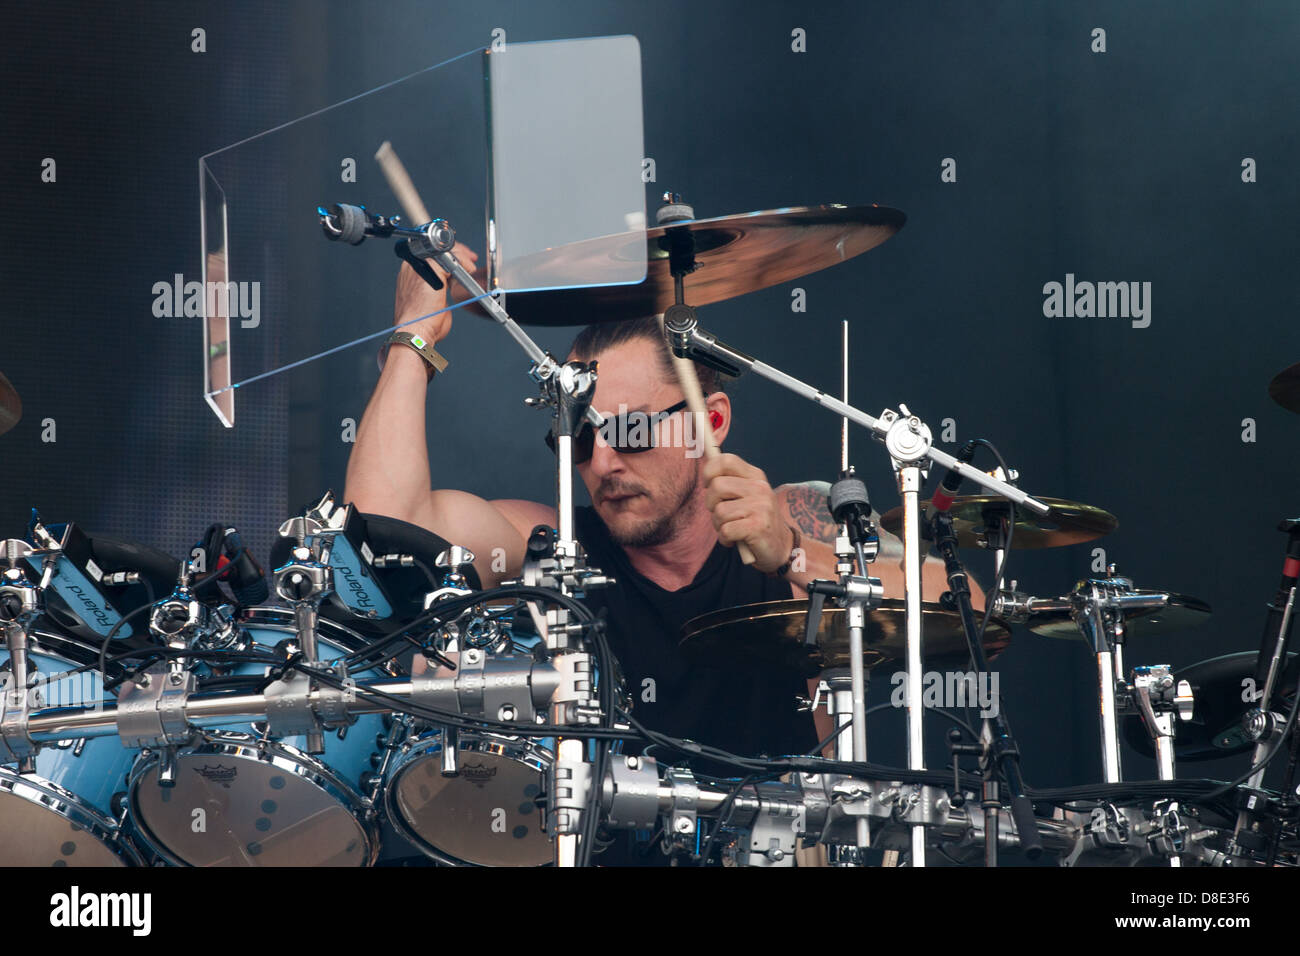 Shannon Leto, Drummer of 30 Seconds to Mars. - Stock Image